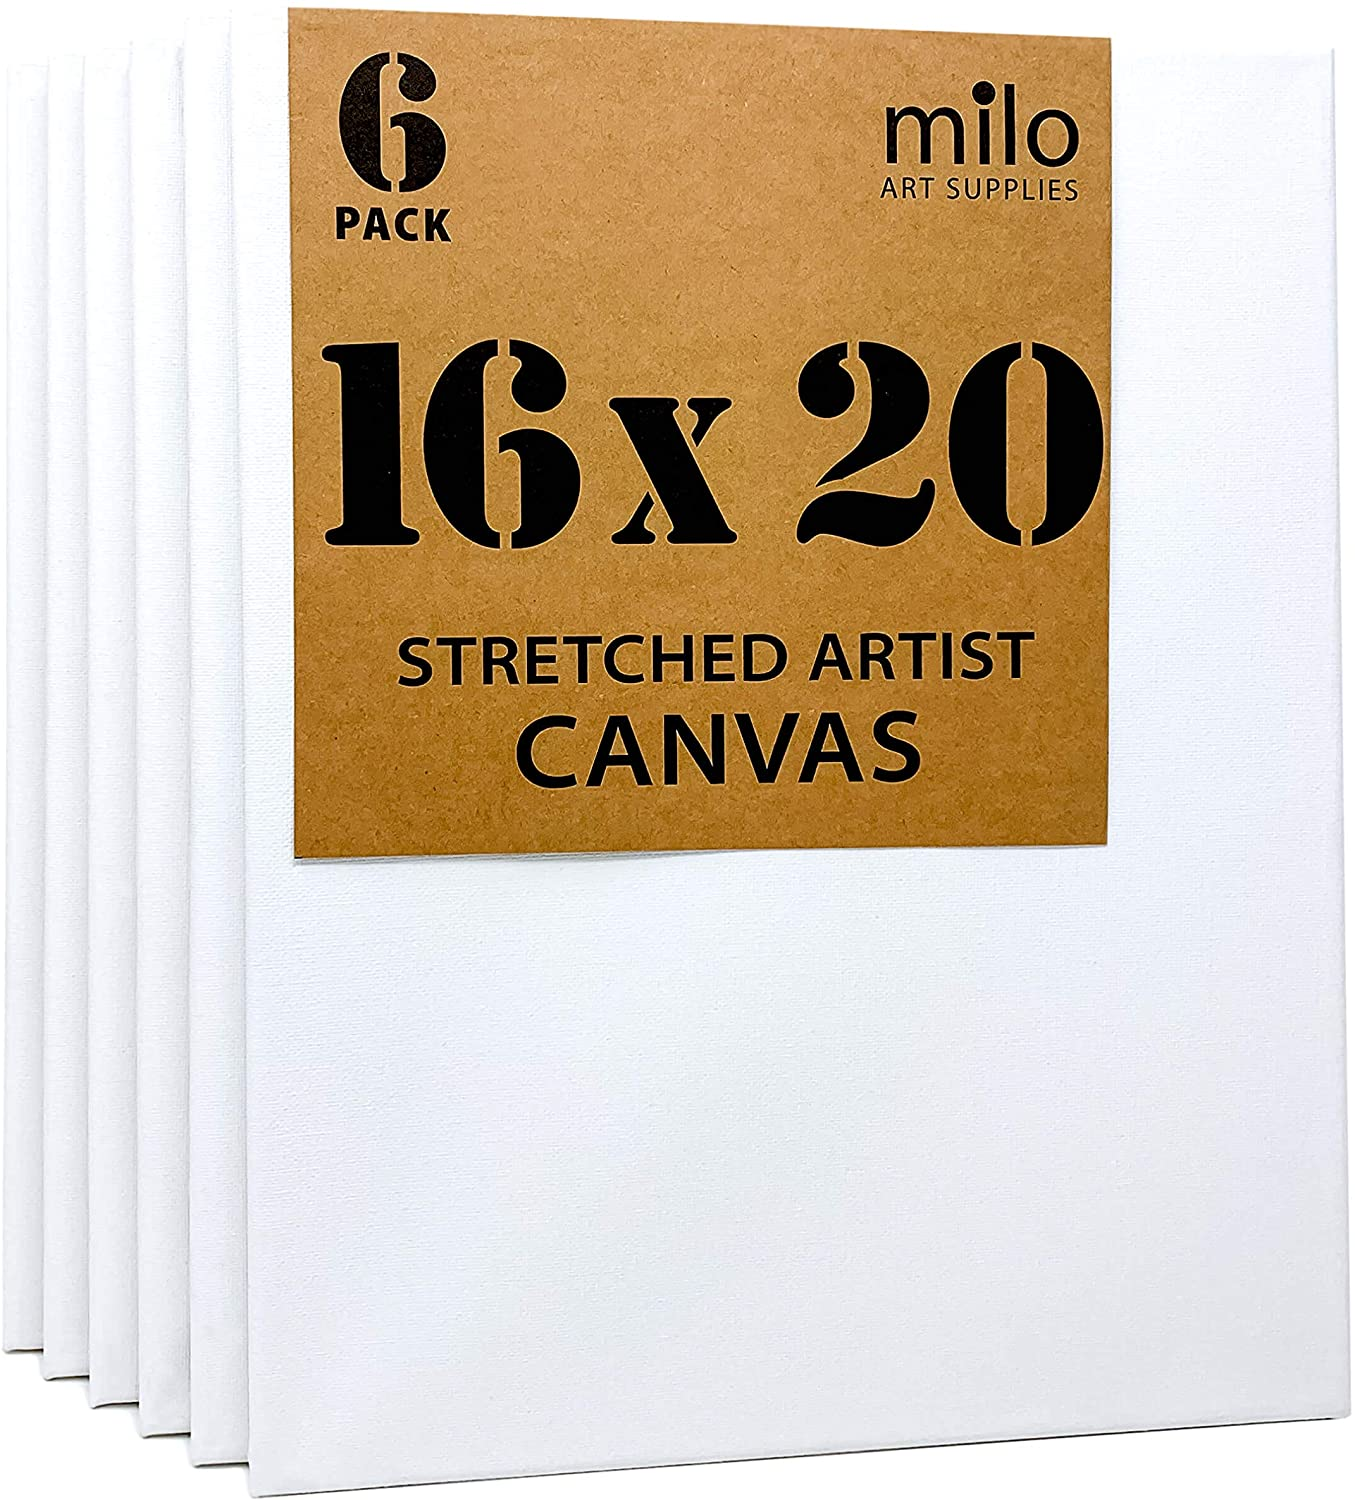 milo Stretched Artist Canvas | 16x20 inches | Value Pack of 6